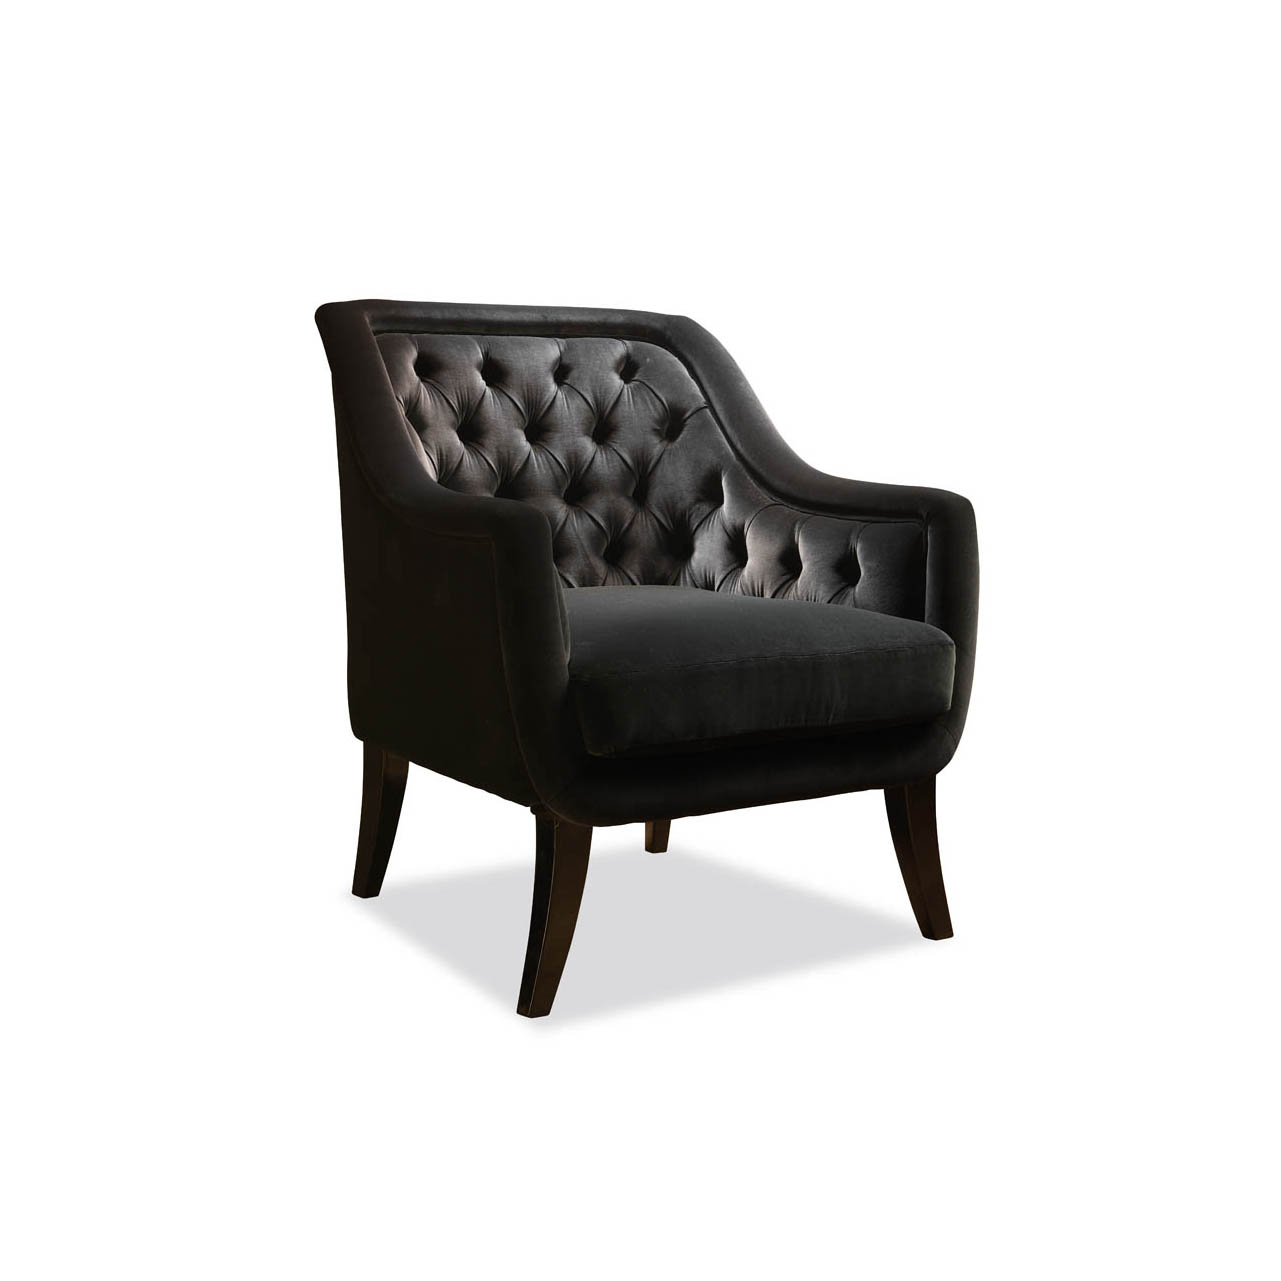 Home / Furniture / Living Room / Armchairs / Beatrice Armchair